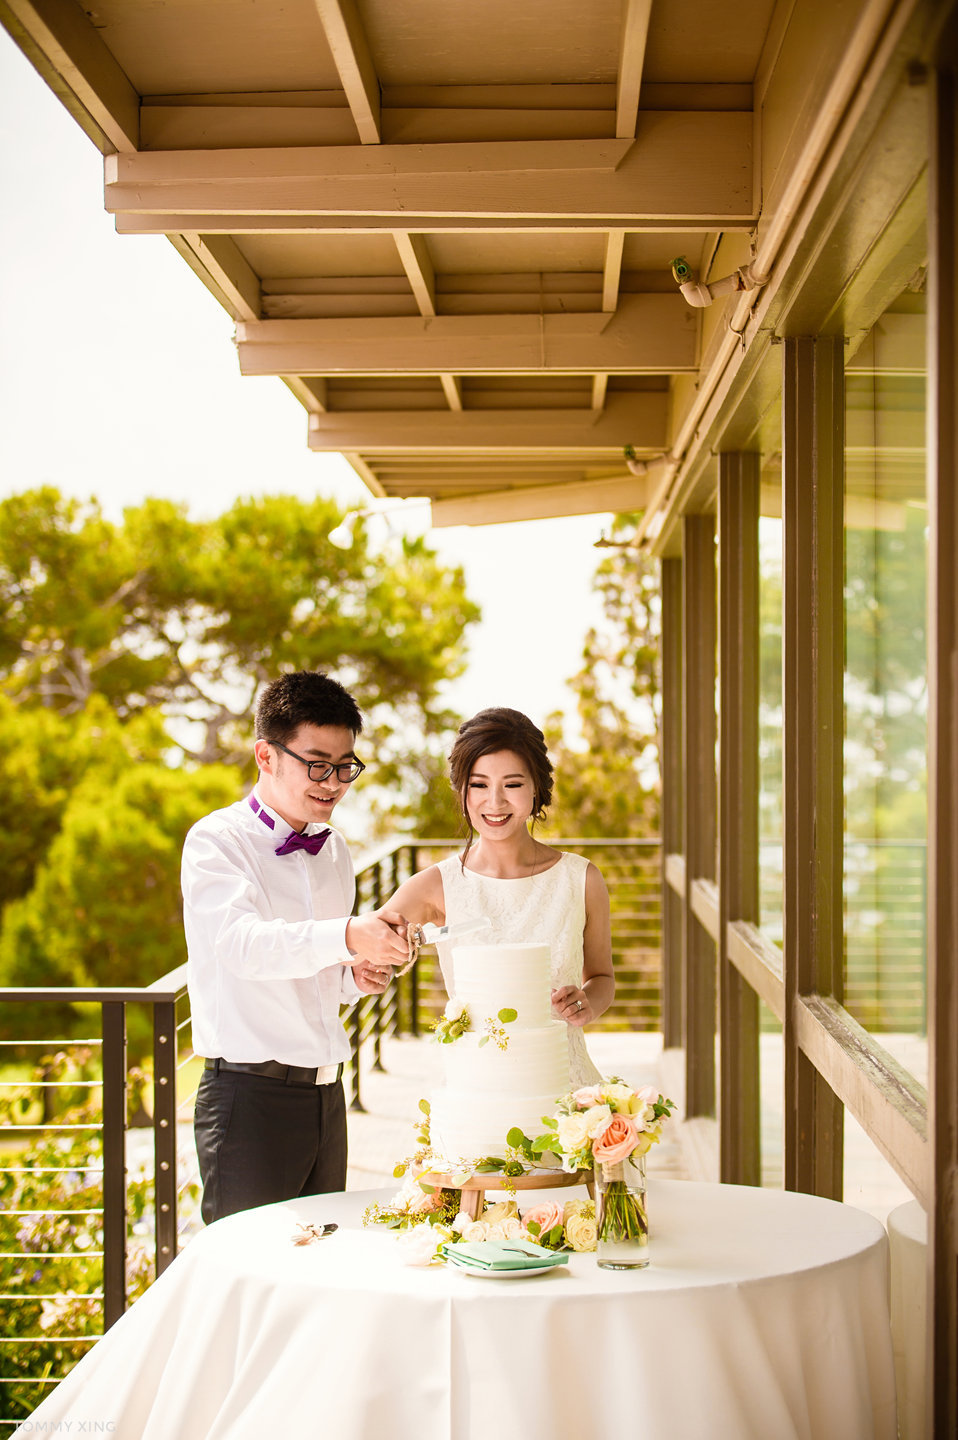 Wayfarers chapel Wedding Photography Ranho Palos Verdes Tommy Xing Photography 洛杉矶玻璃教堂婚礼婚纱照摄影师288.jpg